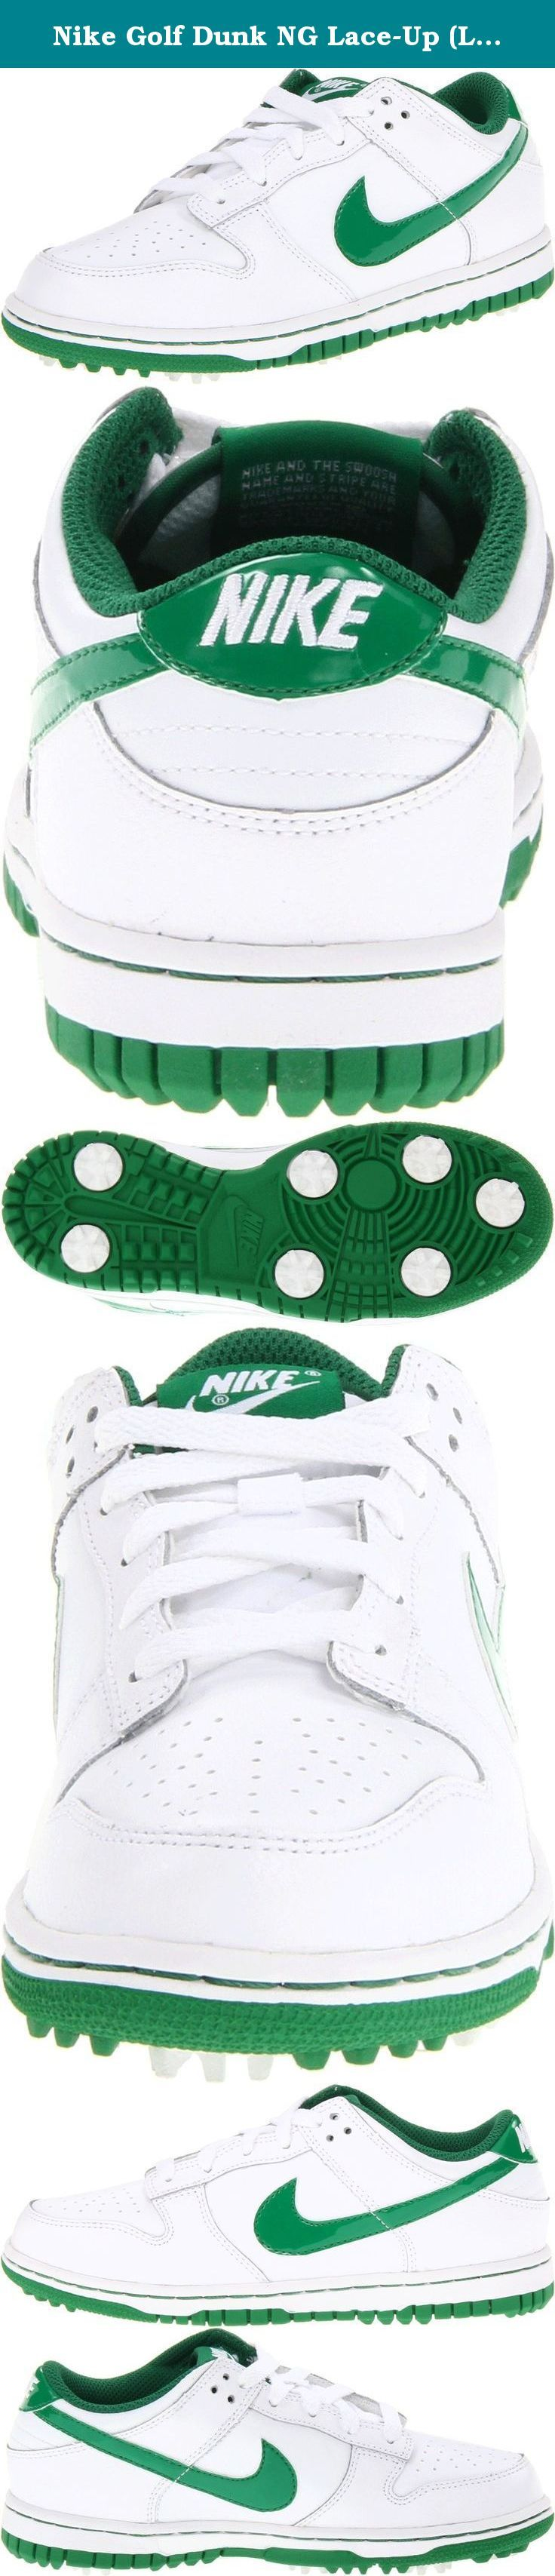 Nike Golf Dunk NG Lace-Up (Little Kid/Big Kid),White/Pine Green,6 M US Big Kid. Nike Dunk NG Junior Golf Shoes Nike Golf is passionately dedicated to ushering in the future of this great sport by developing groundbreaking innovations that enable athletes to perform at their physical and mental peak. We believe that your footwear is the foundation of every shot and have developed many styles to deliver comfort while promoting better balance, weight transfer and power through impact. Nike…